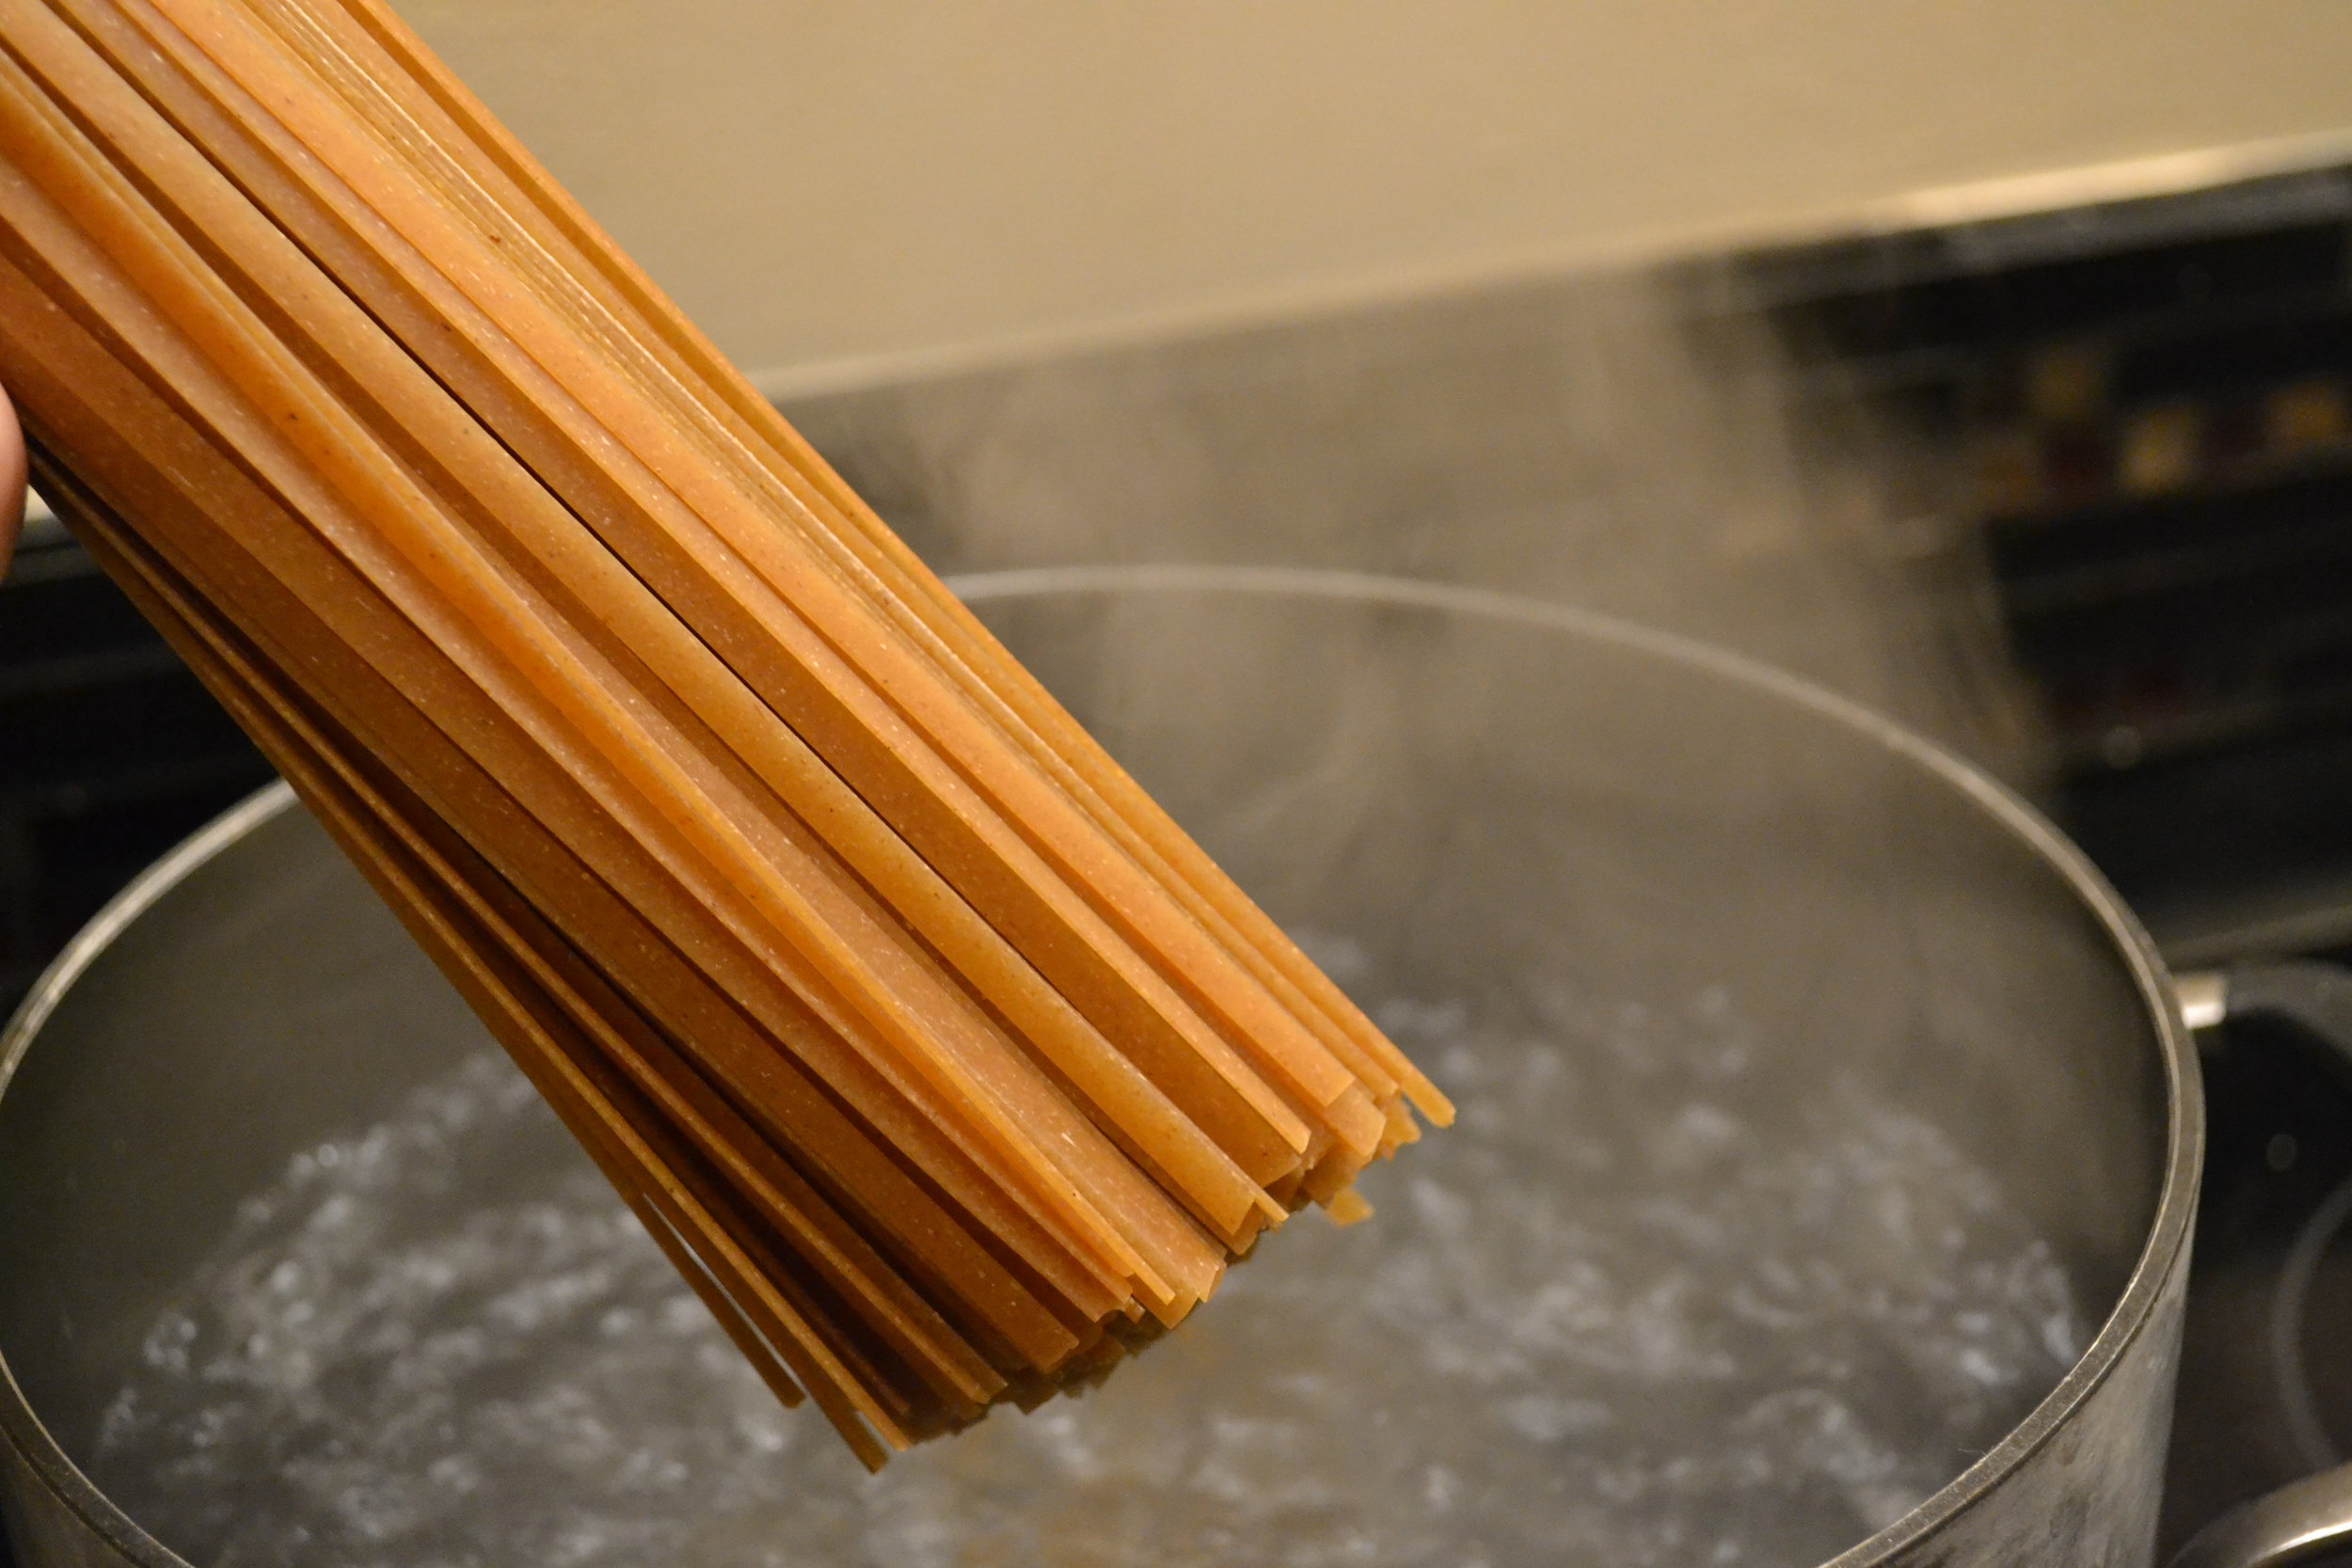 Whole Wheat Pasta into boiling water